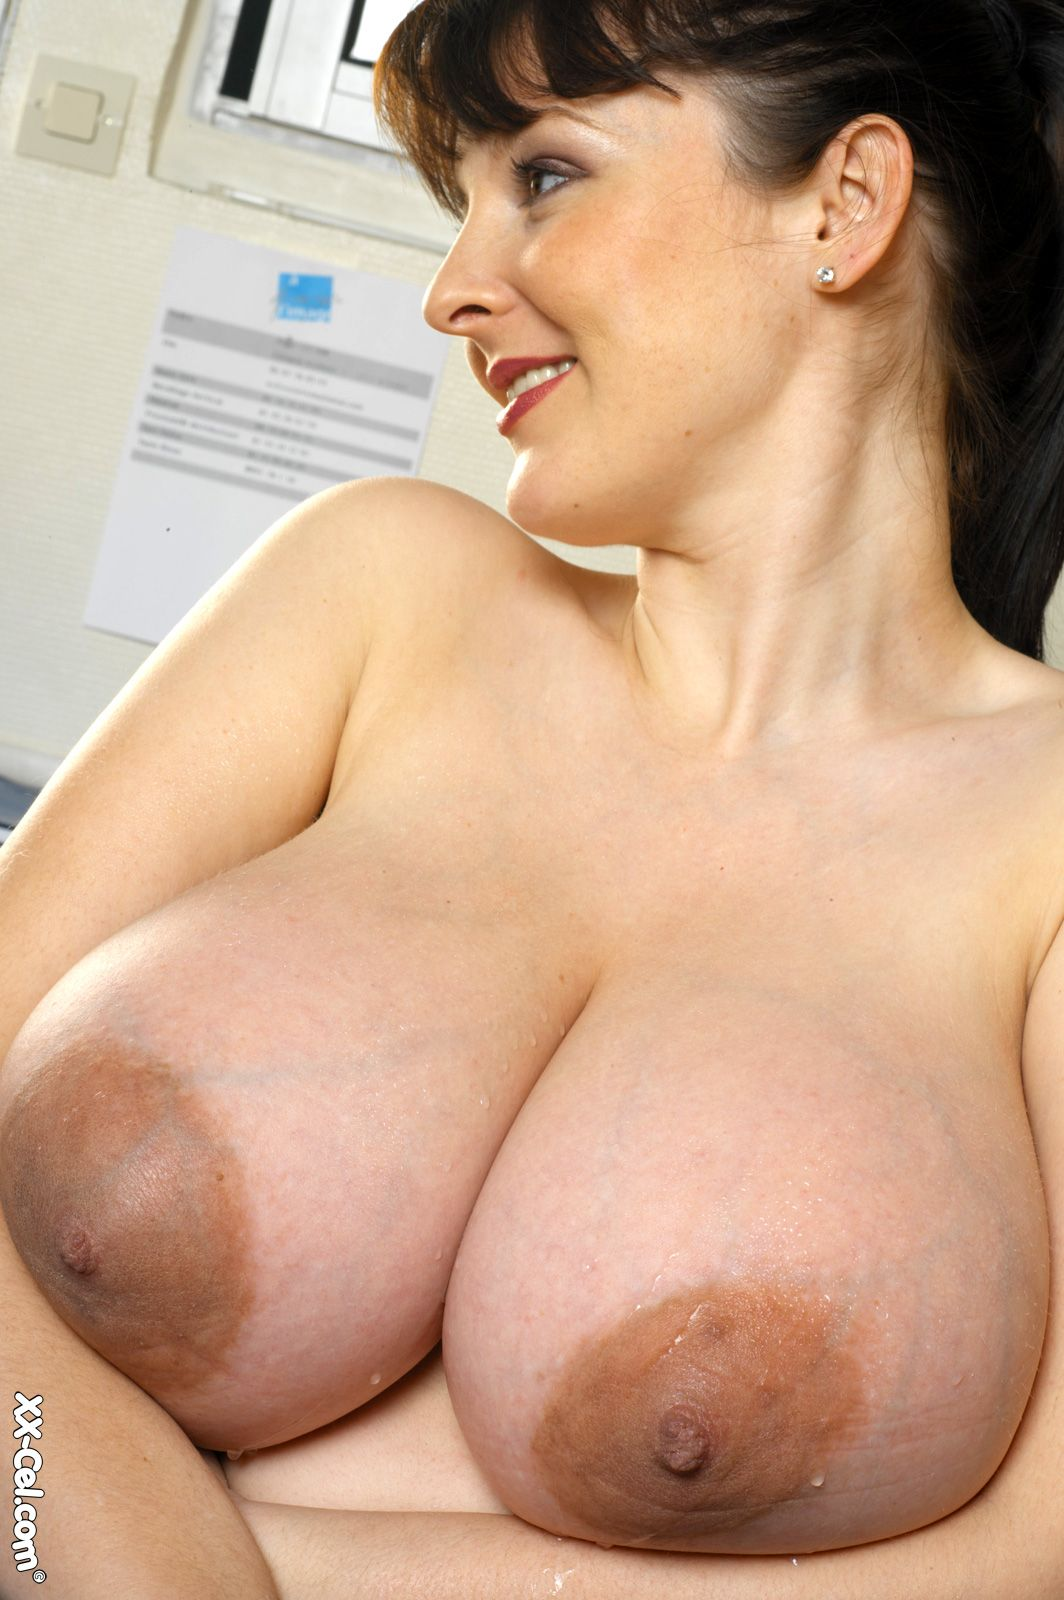 Big tits and niples